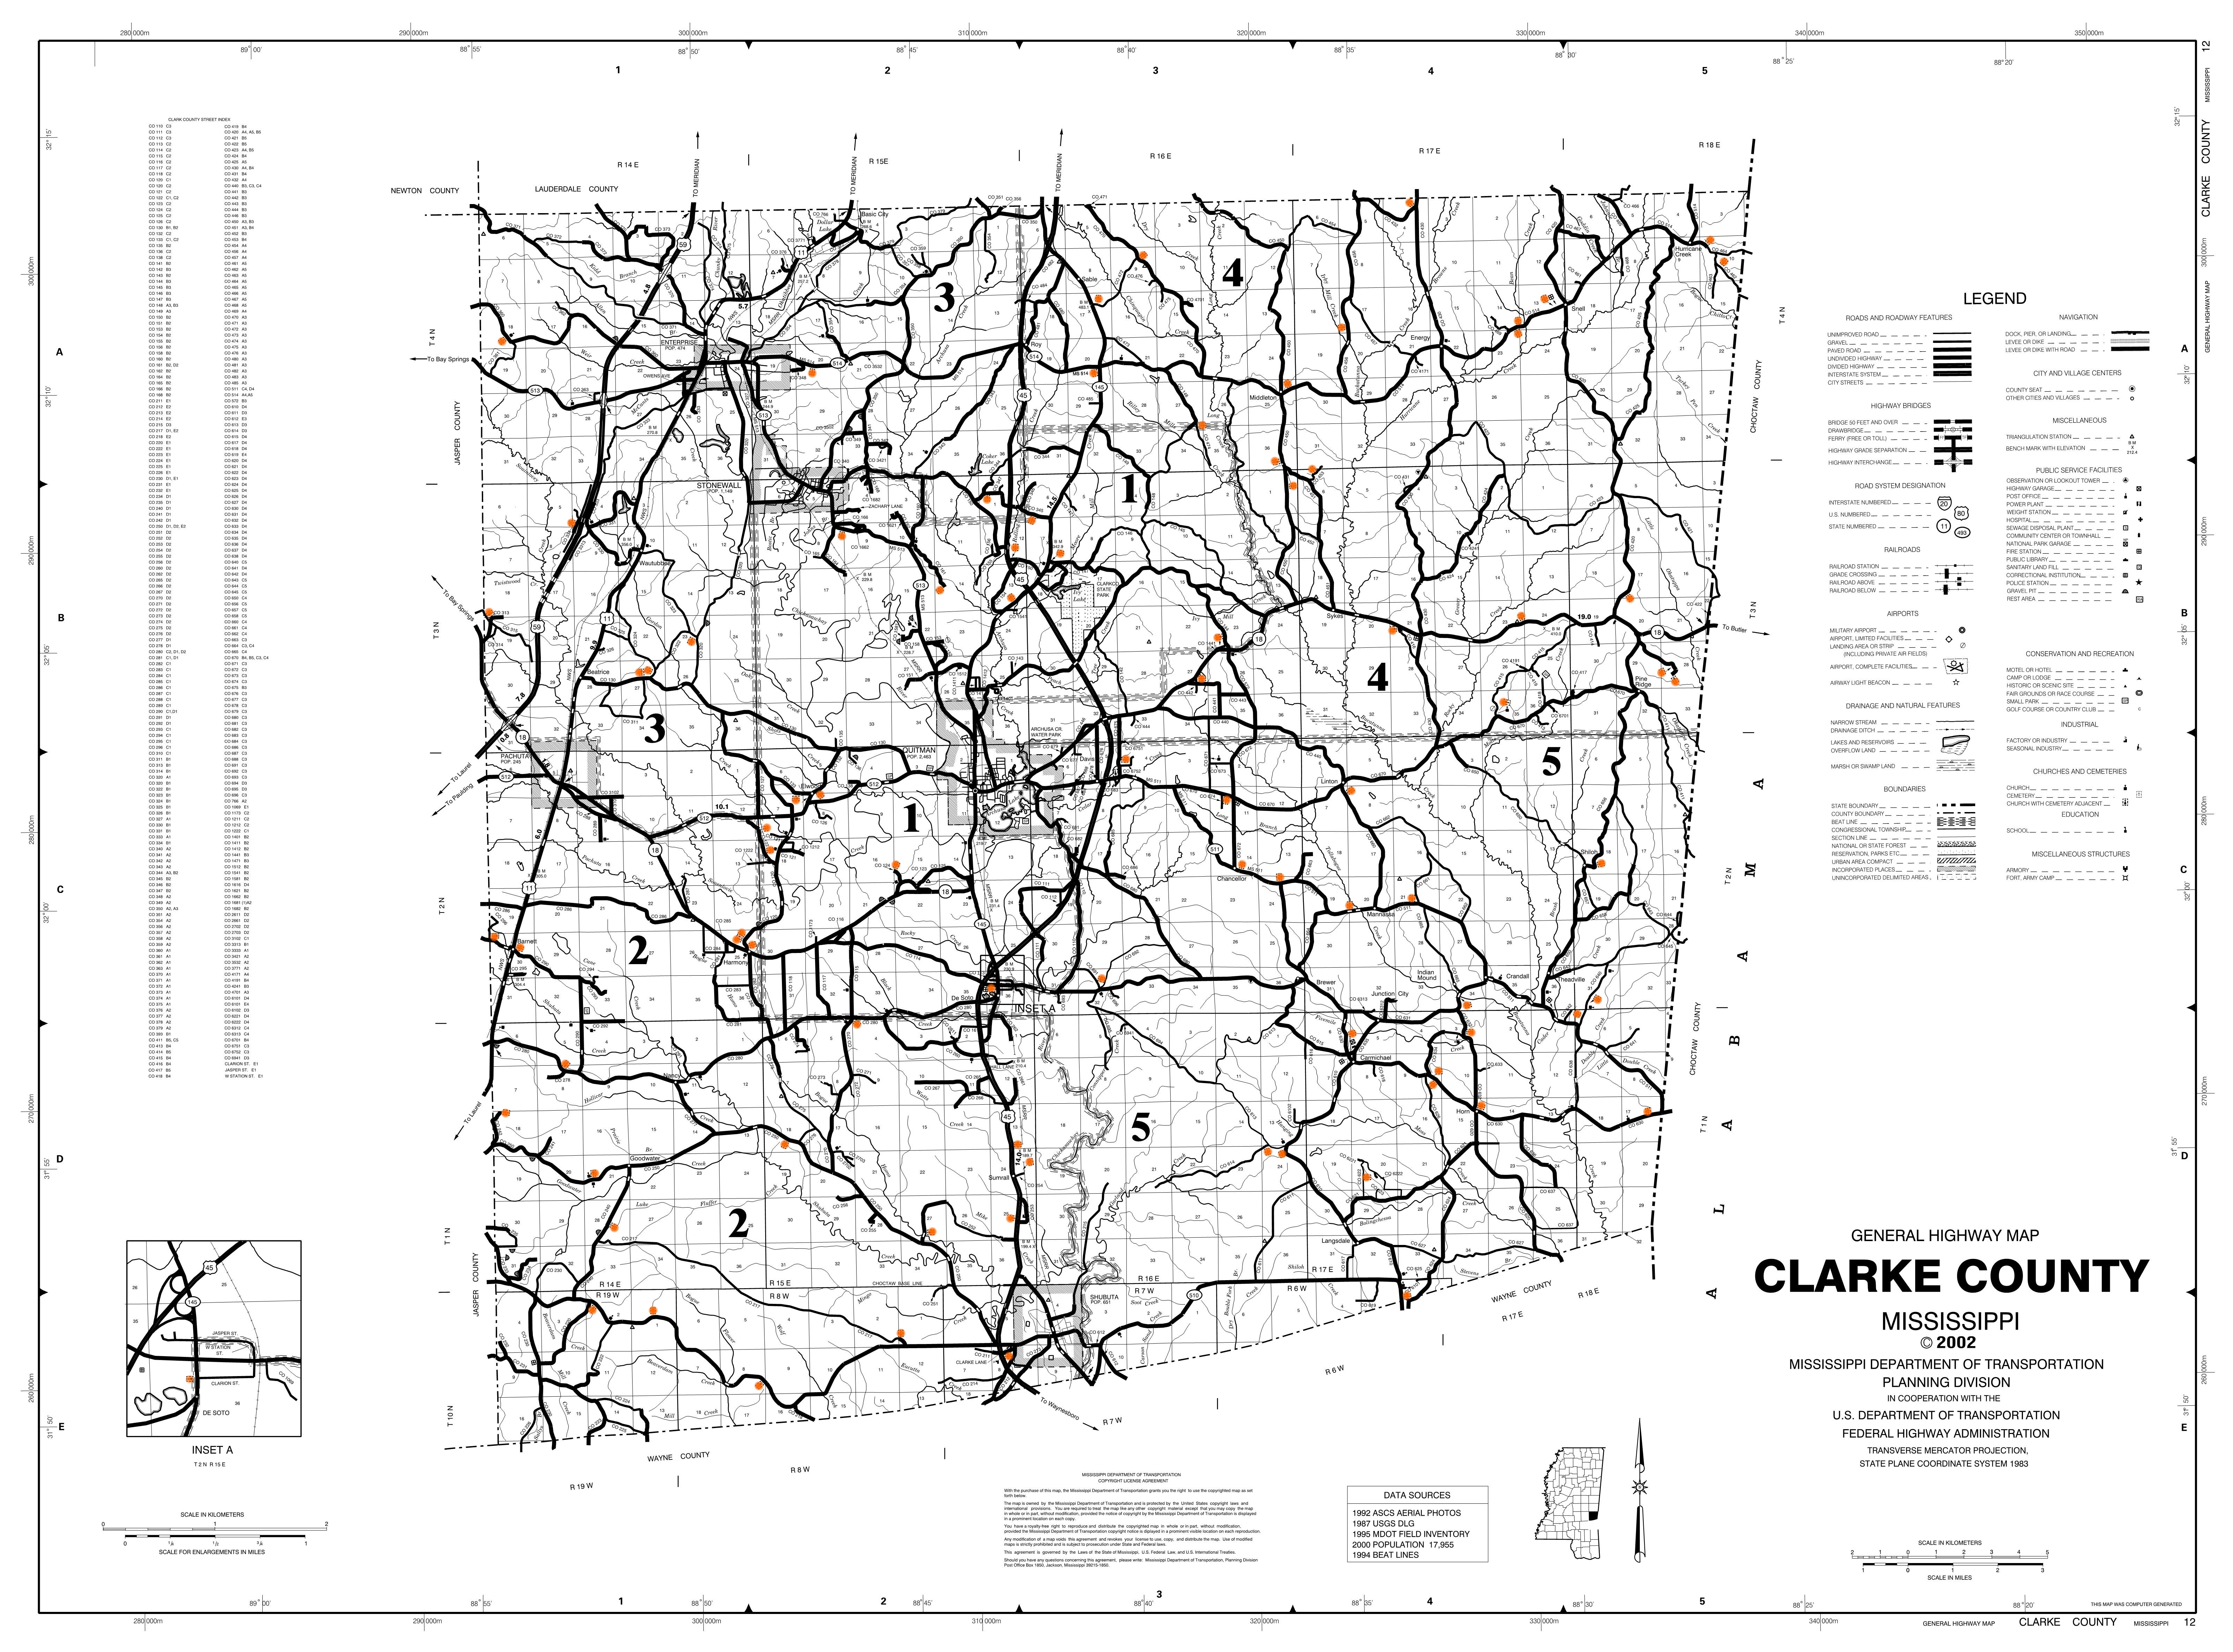 Mississippi george county - County Cemeteries Map